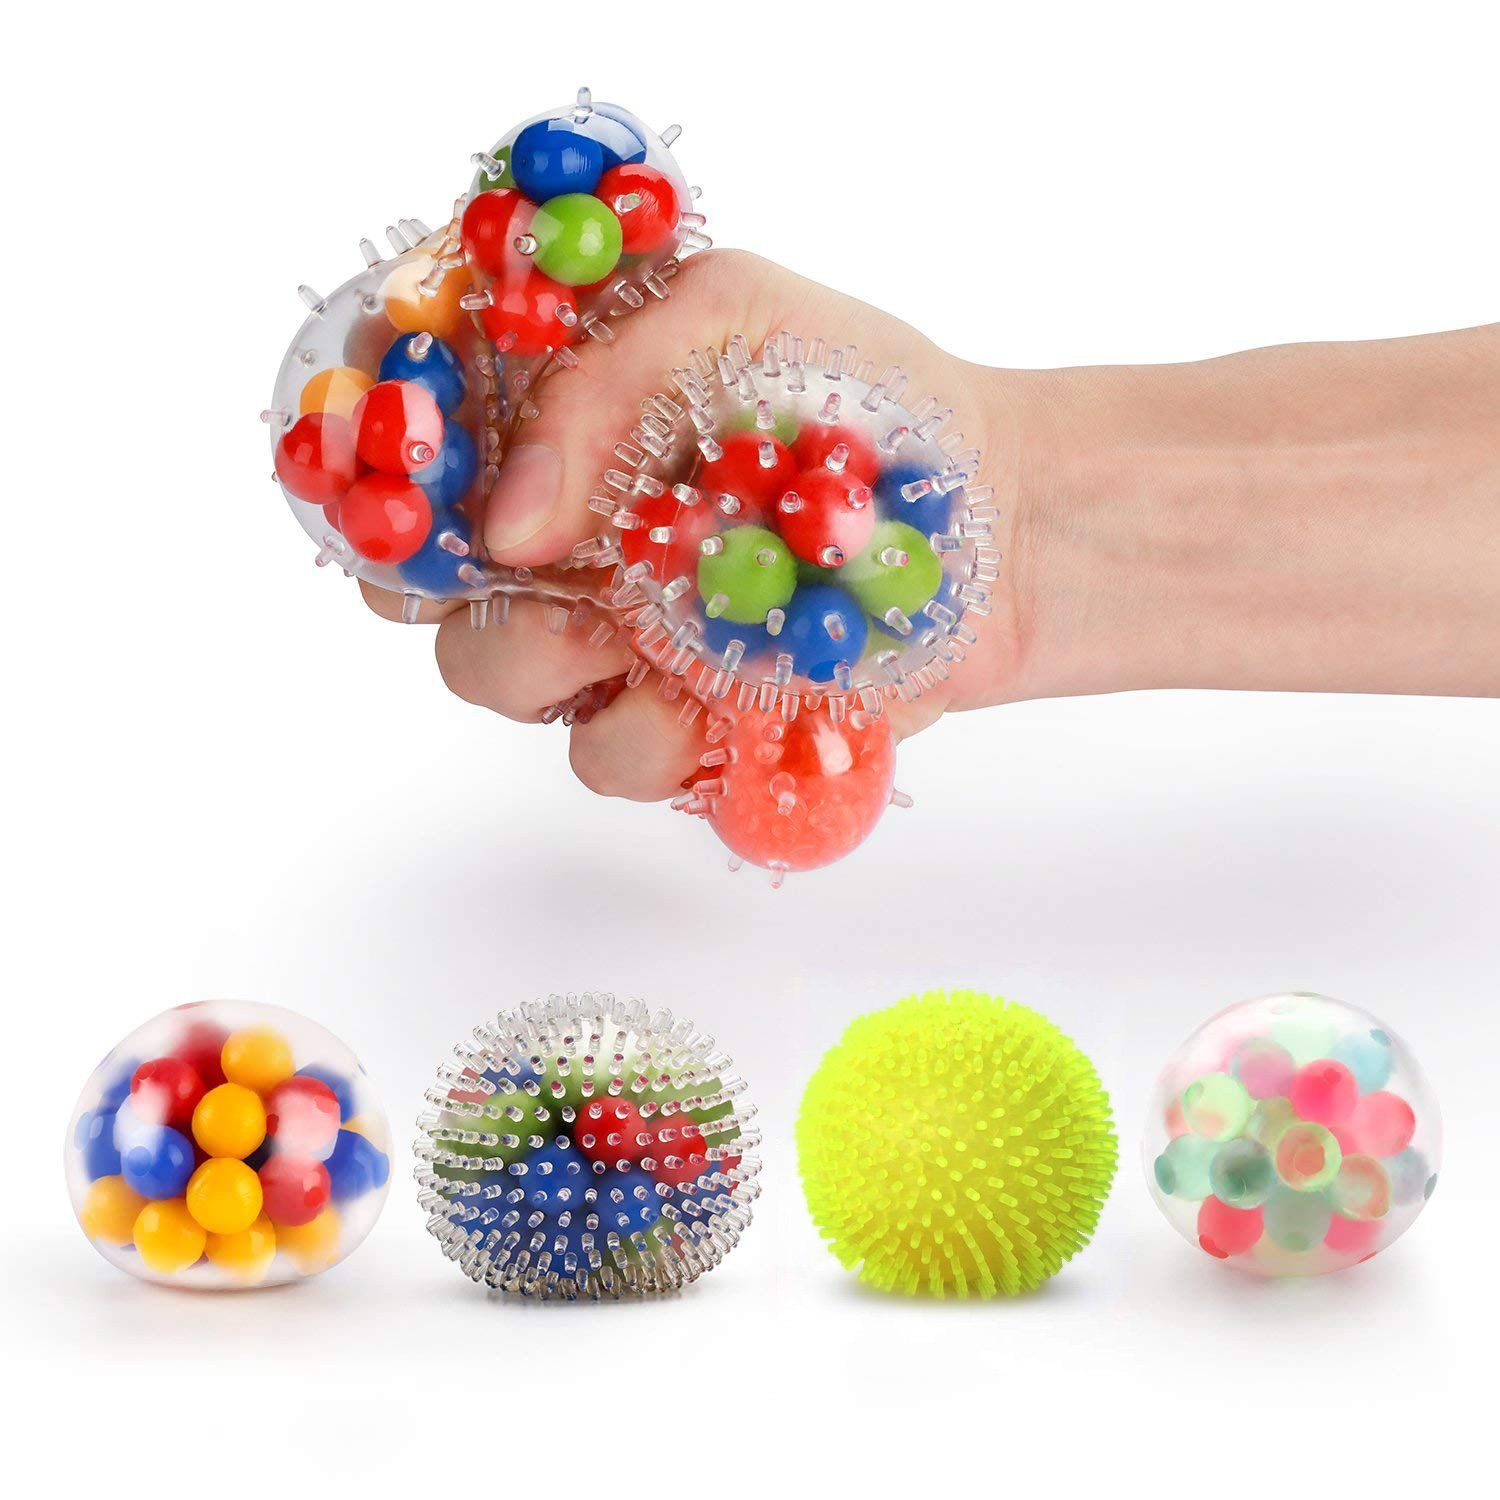 Fansteck Stress Balls for Kids, [4 Pack] Stress Relief Ball for Adults, Squeeze Ball/Sensory Ball, Rainbow LED Stress Ball, Ideal for Autism, Anxiety & More (4 Different Balls) by Fansteck